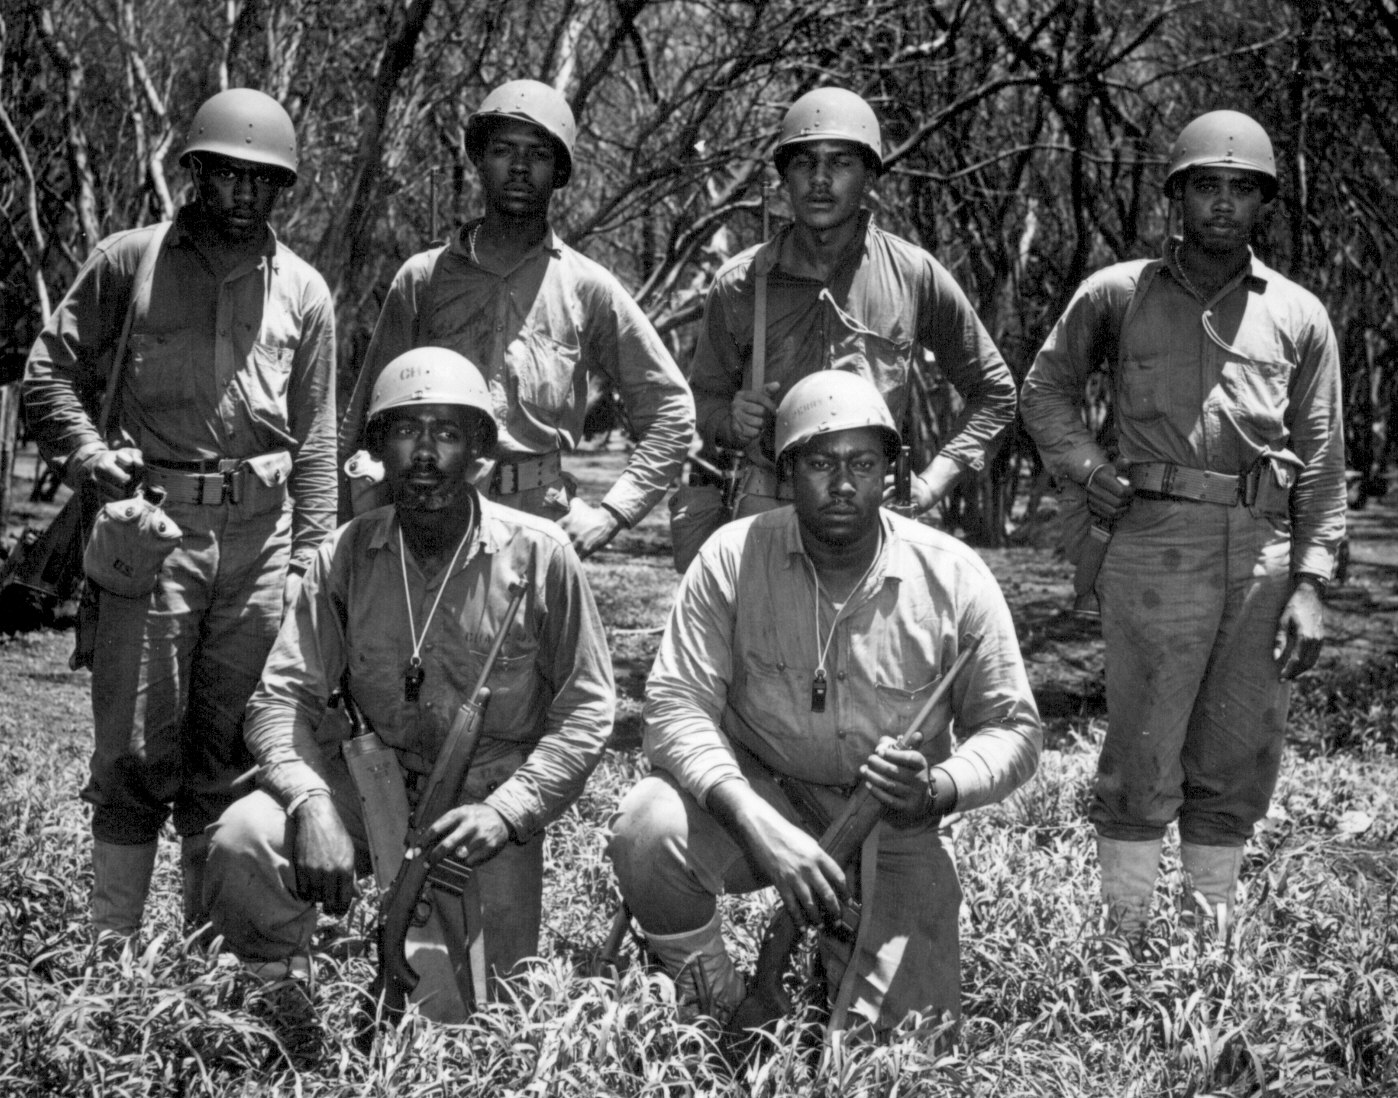 african americans during the post world war The history of african americans in the us civil war is marked by 186,097 (7,122 officers, 178,975 enlisted) african-american men, comprising 163 units, who served in the union army during the civil war, and many more african americans served in the union navy both free african americans and runaway slaves joined the fight.